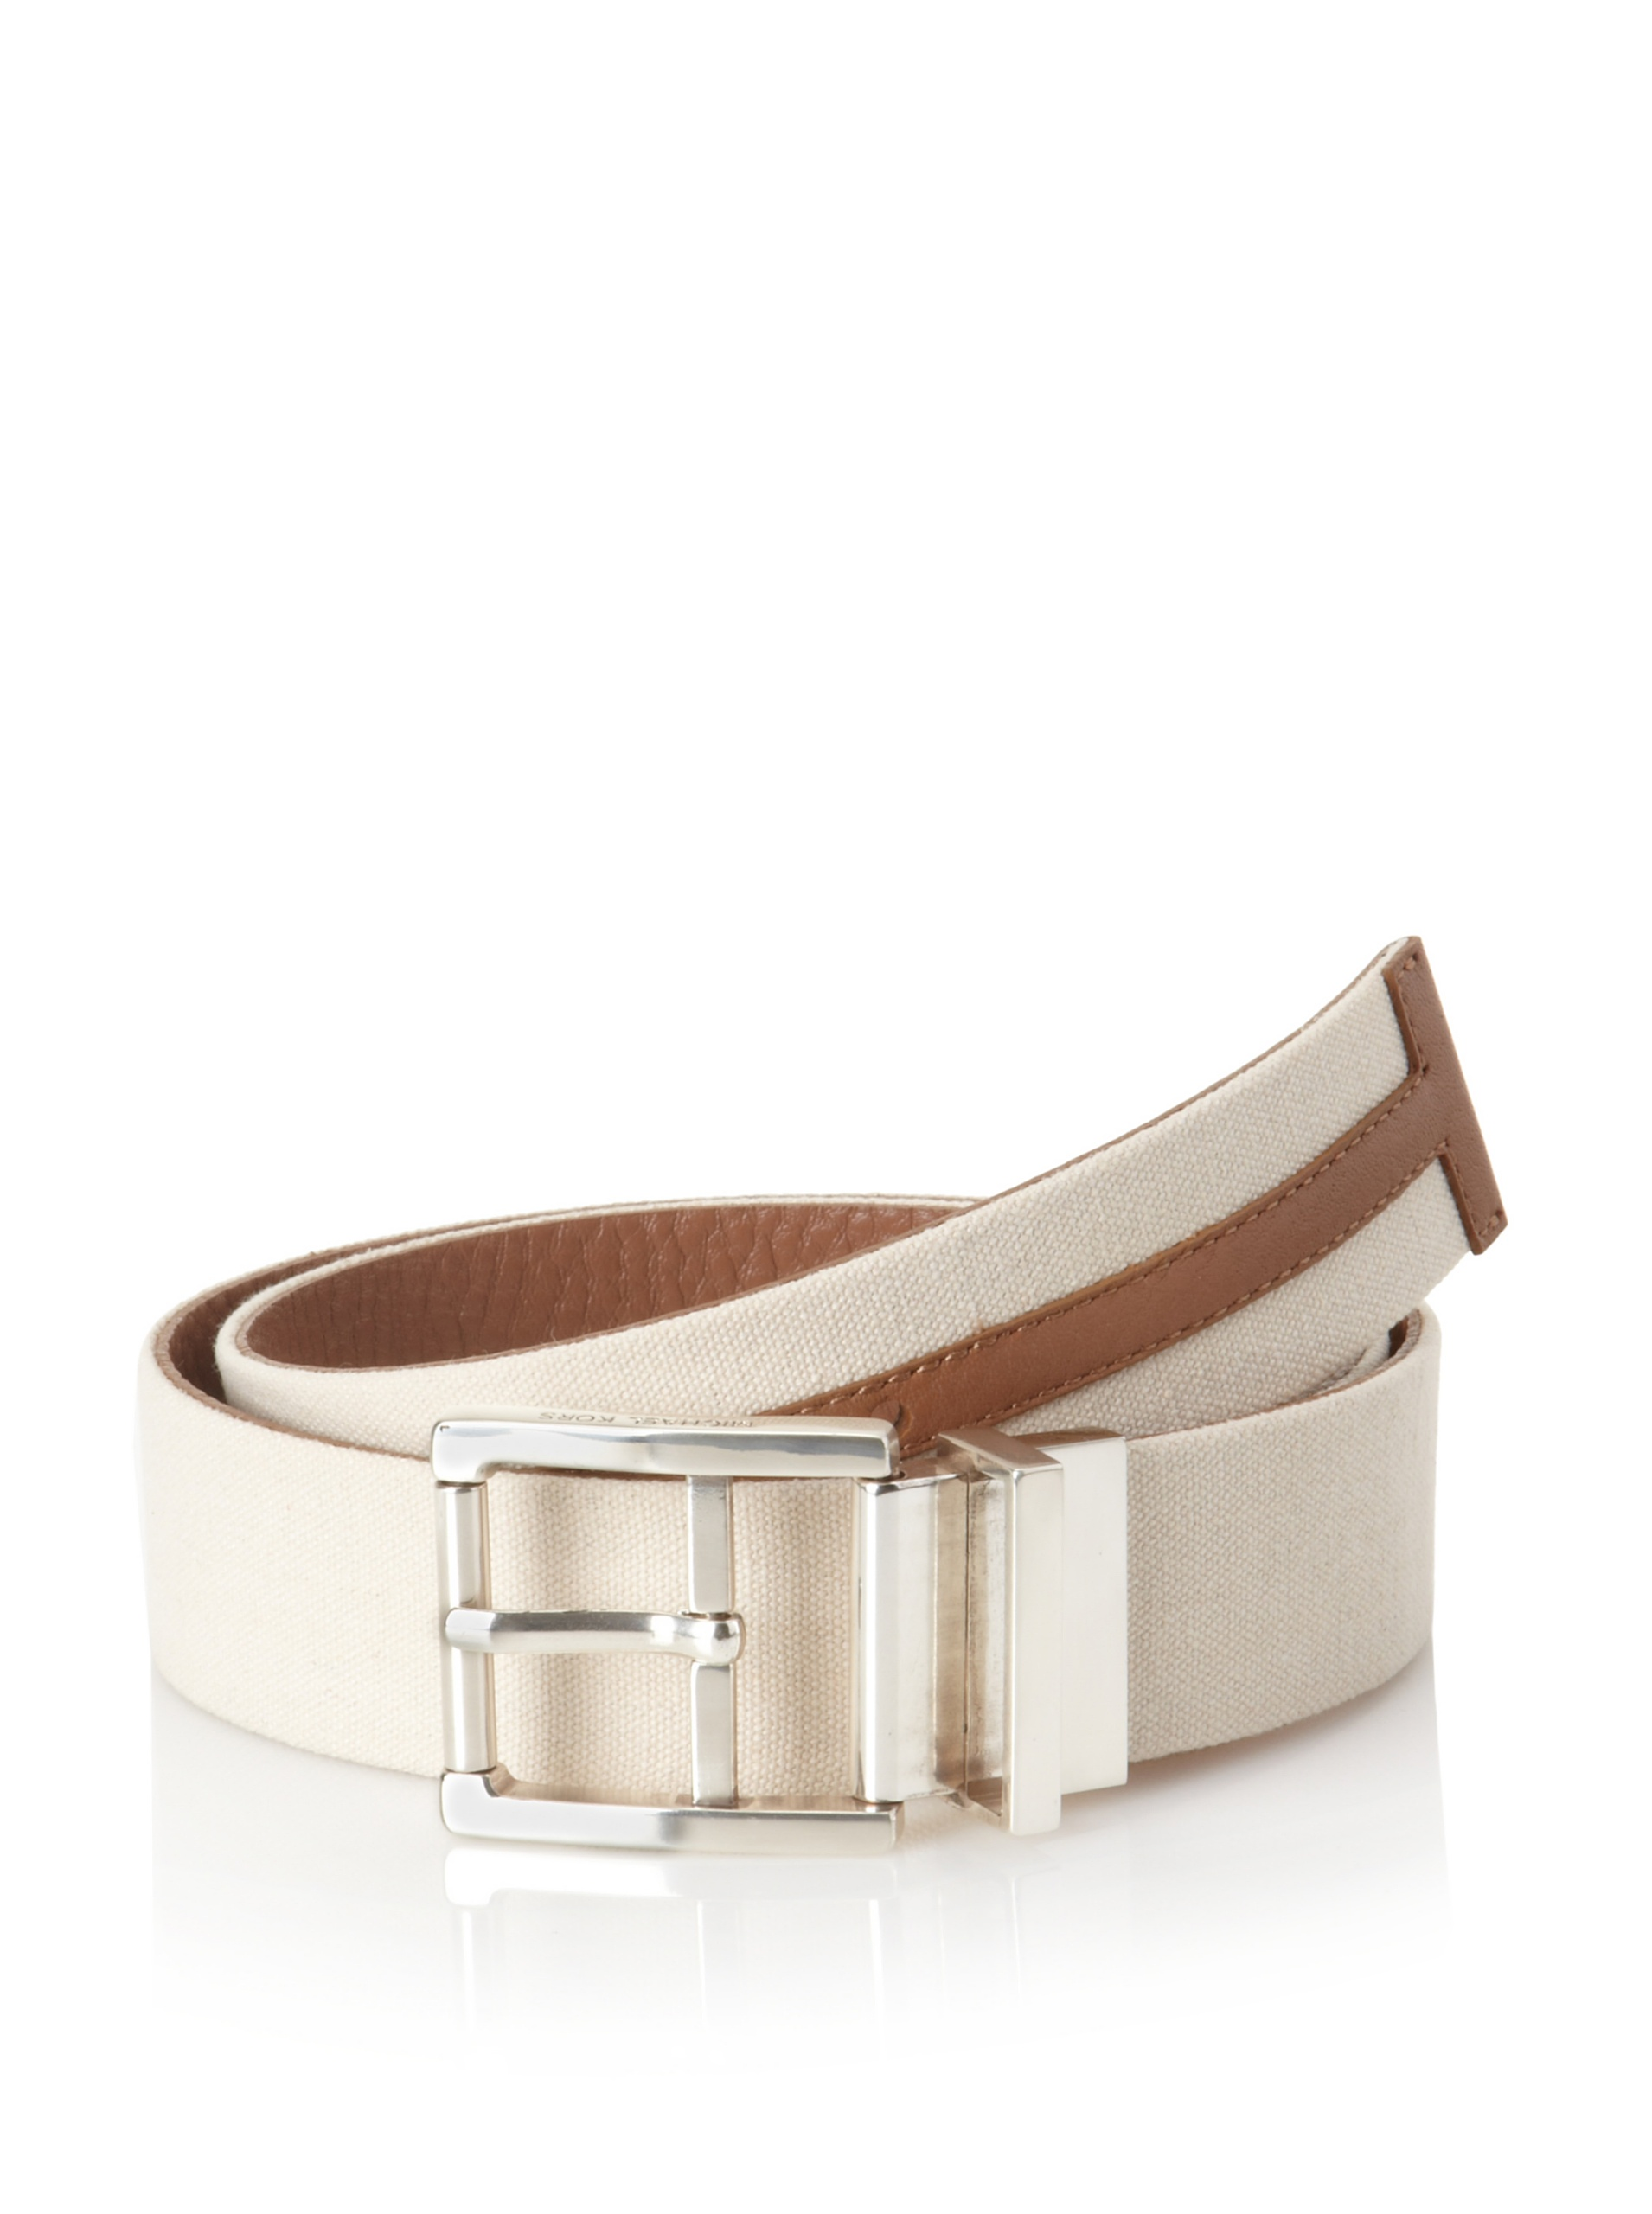 Michael Kors Men's Reversible Belt (Luggage)